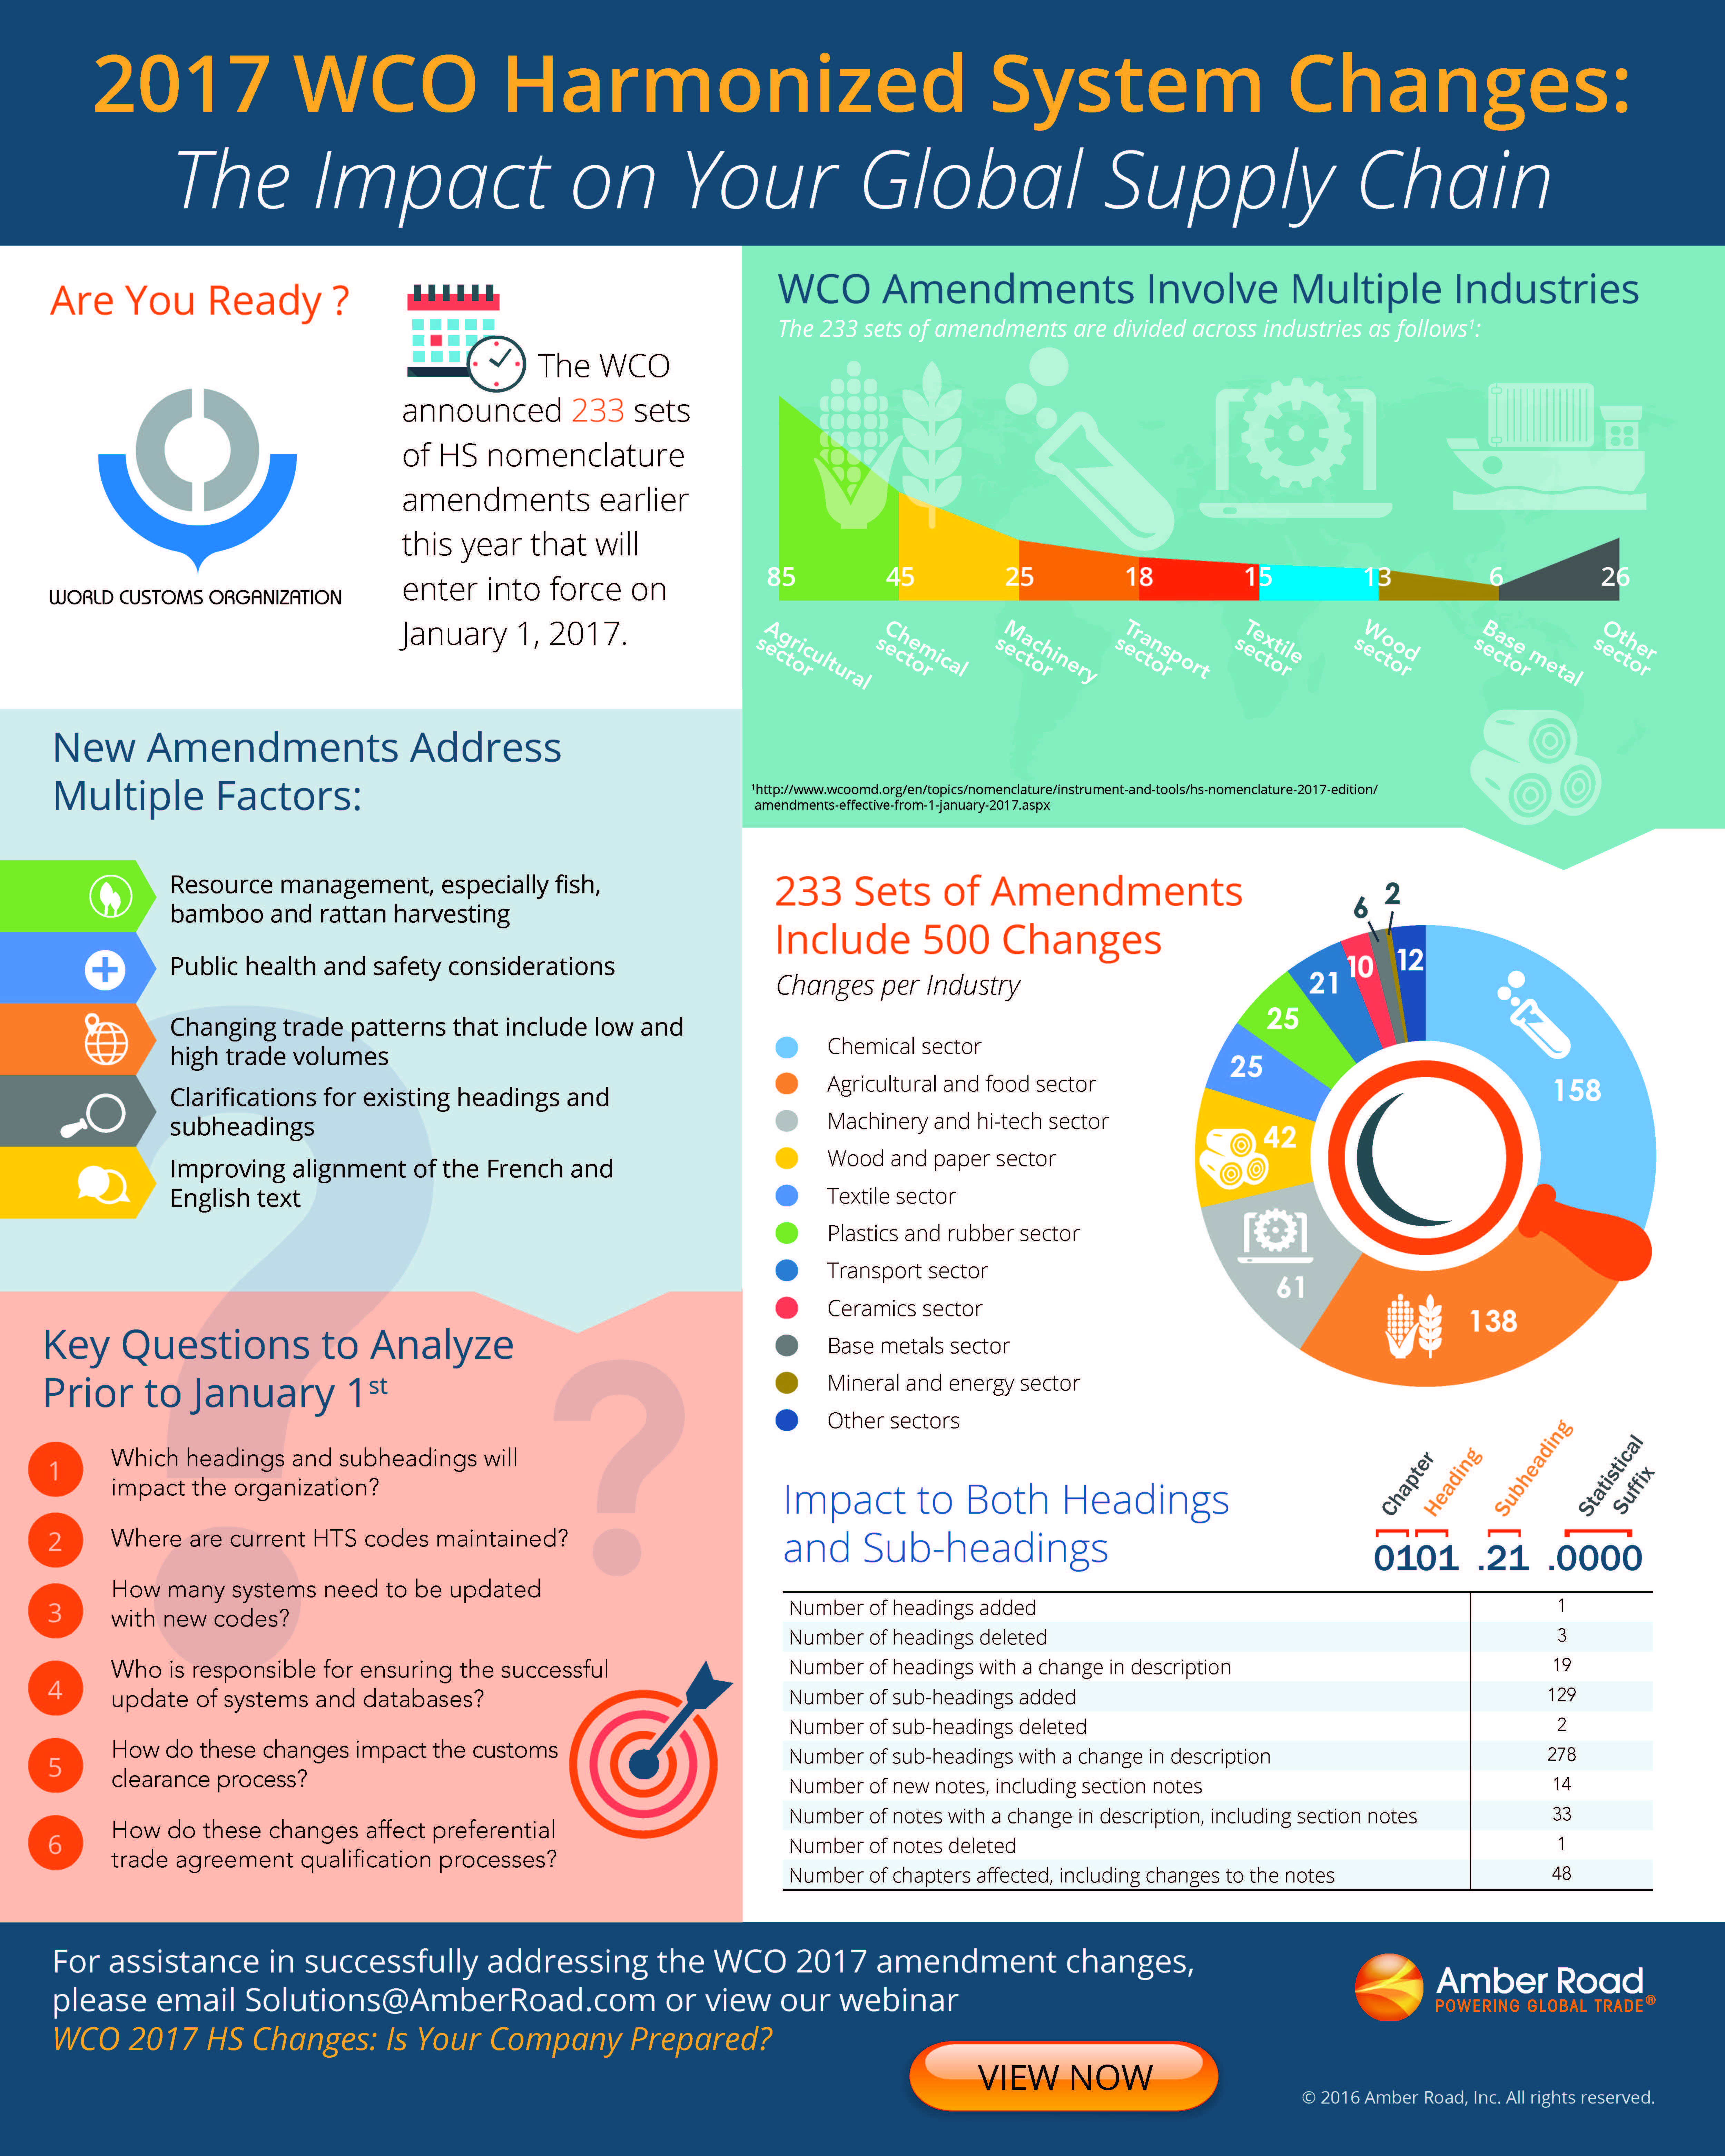 Amber Road 2017 WCO HS Changes Infographic.jpg